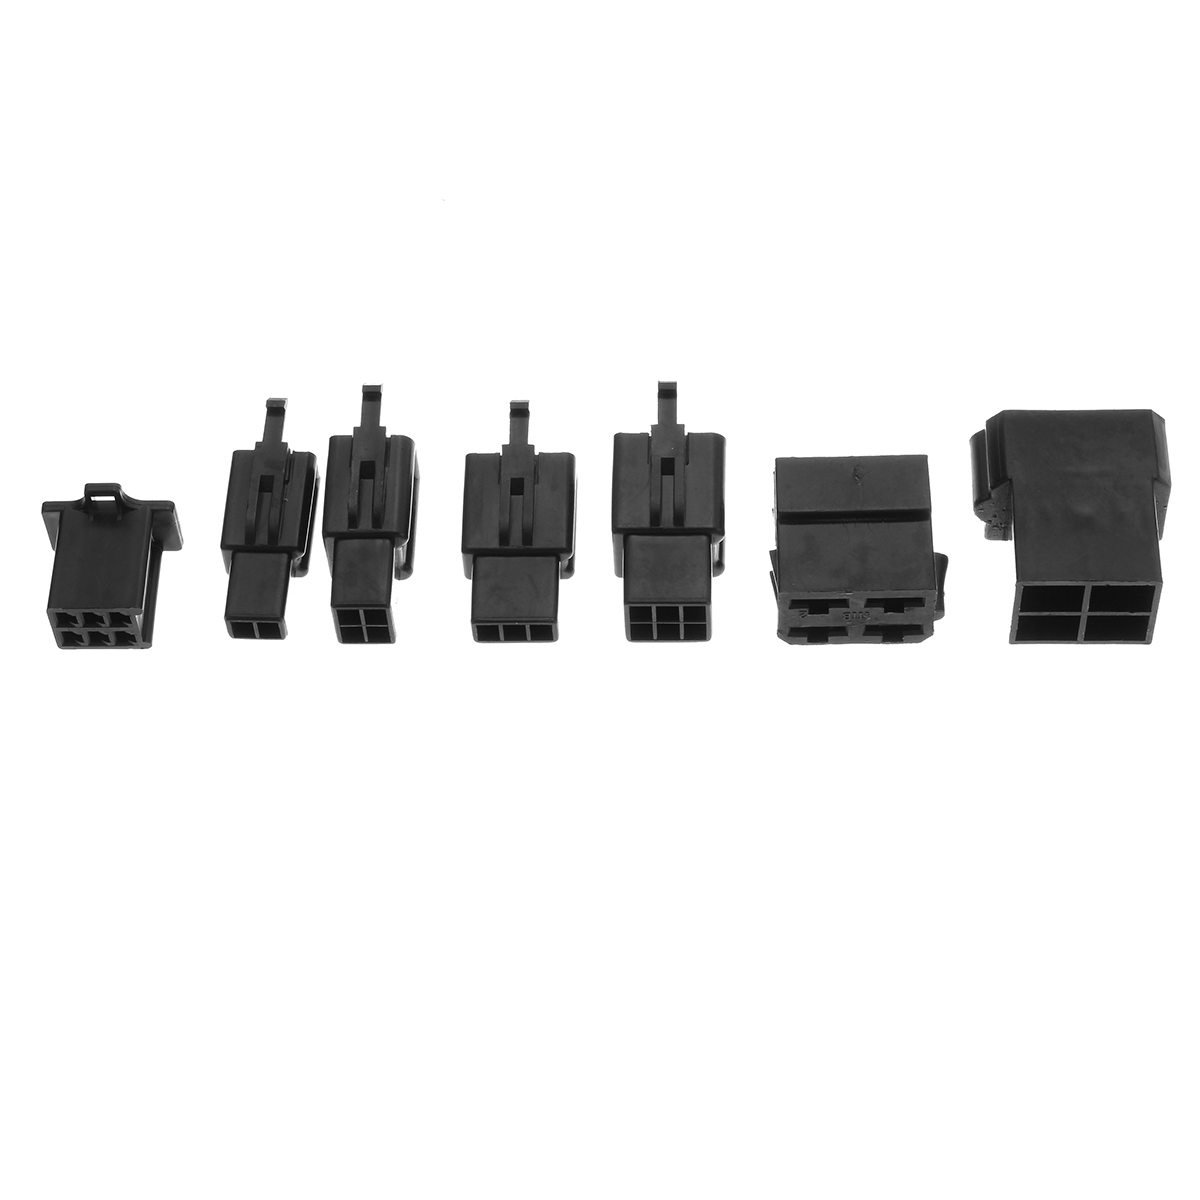 Car Motorcycle Electrical Wiring Harness Connector Plug Bullet For Used Printer Yamaha Xt125 Xt350 Xt500 Xt600 Xt660 In Cables Adapters Sockets From Automobiles